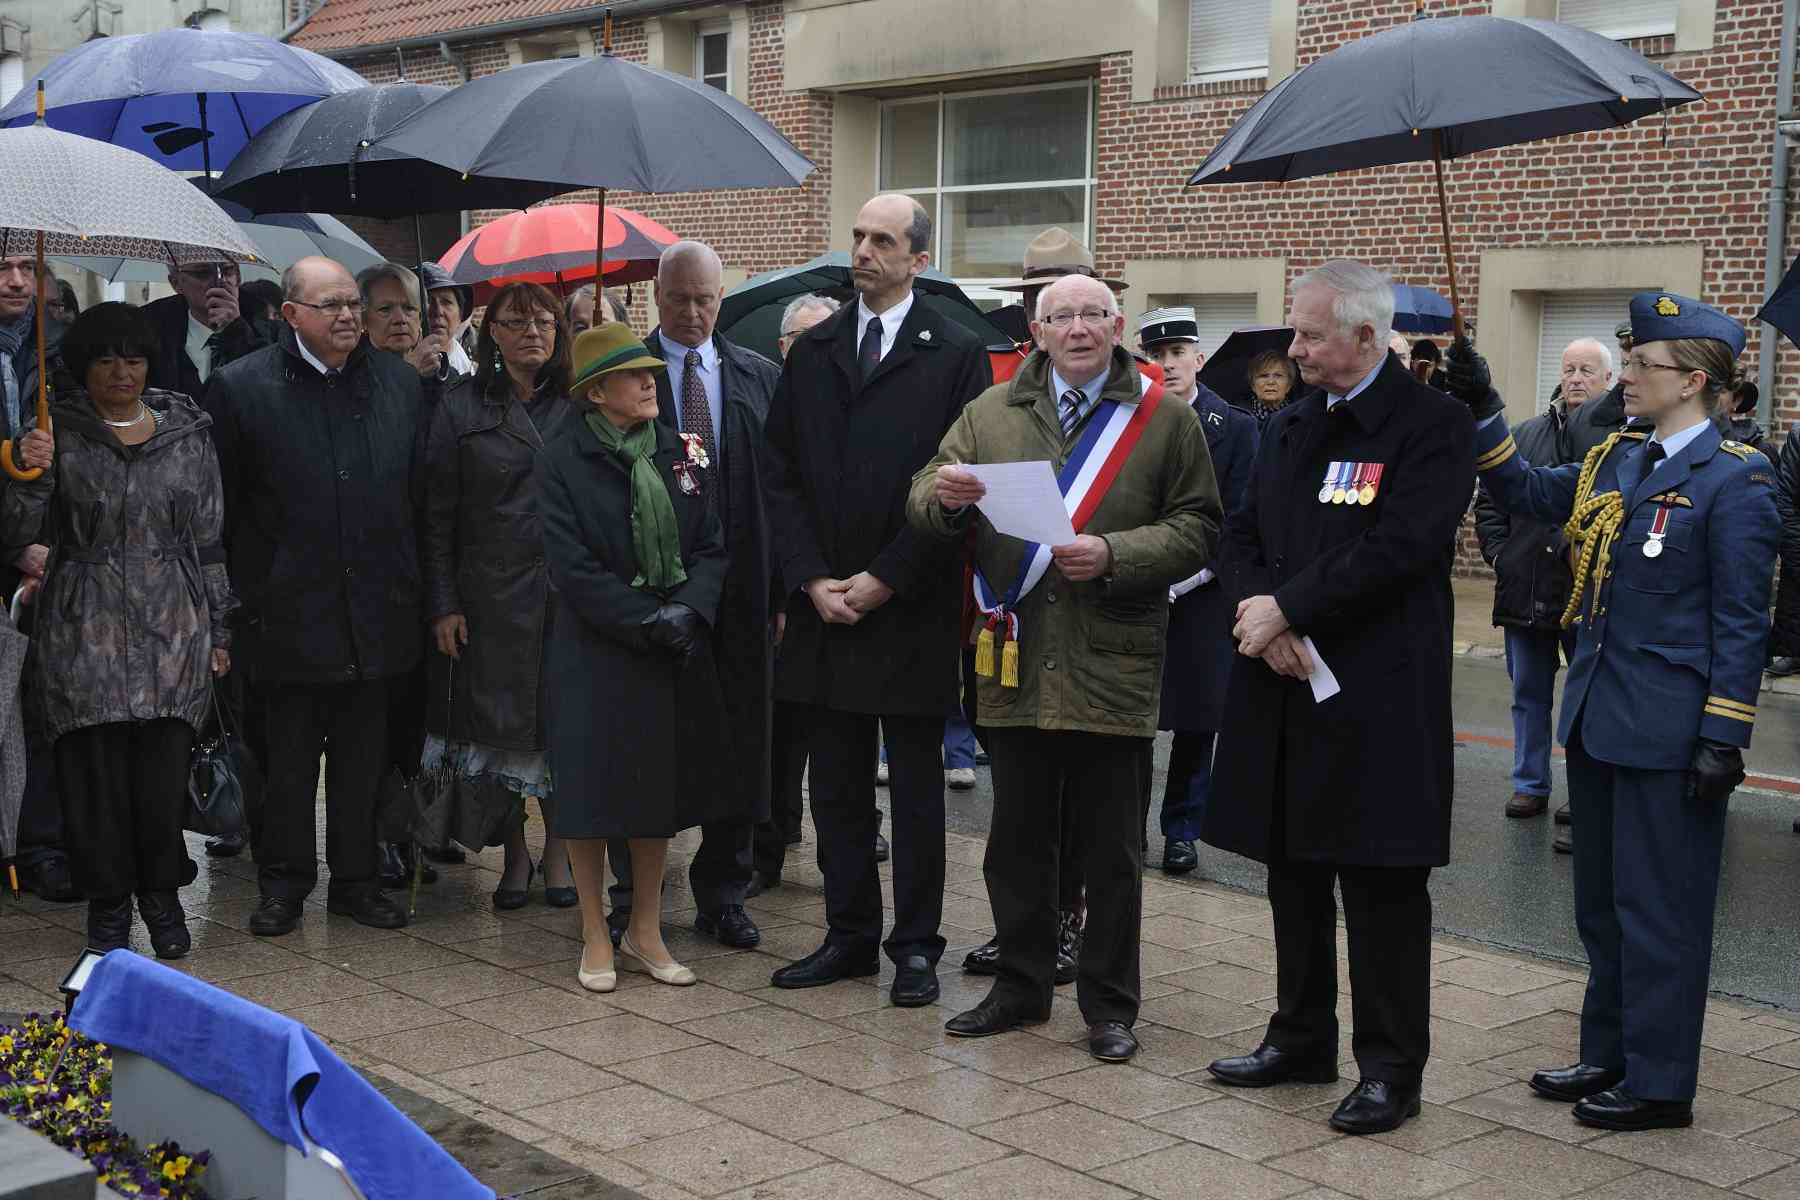 Their Excellencies also attended the unveiling of a commemorative plaque at Thélus City Hall. The Mayor, Mr. Bernard Milleville, delivered an address for the occasion.